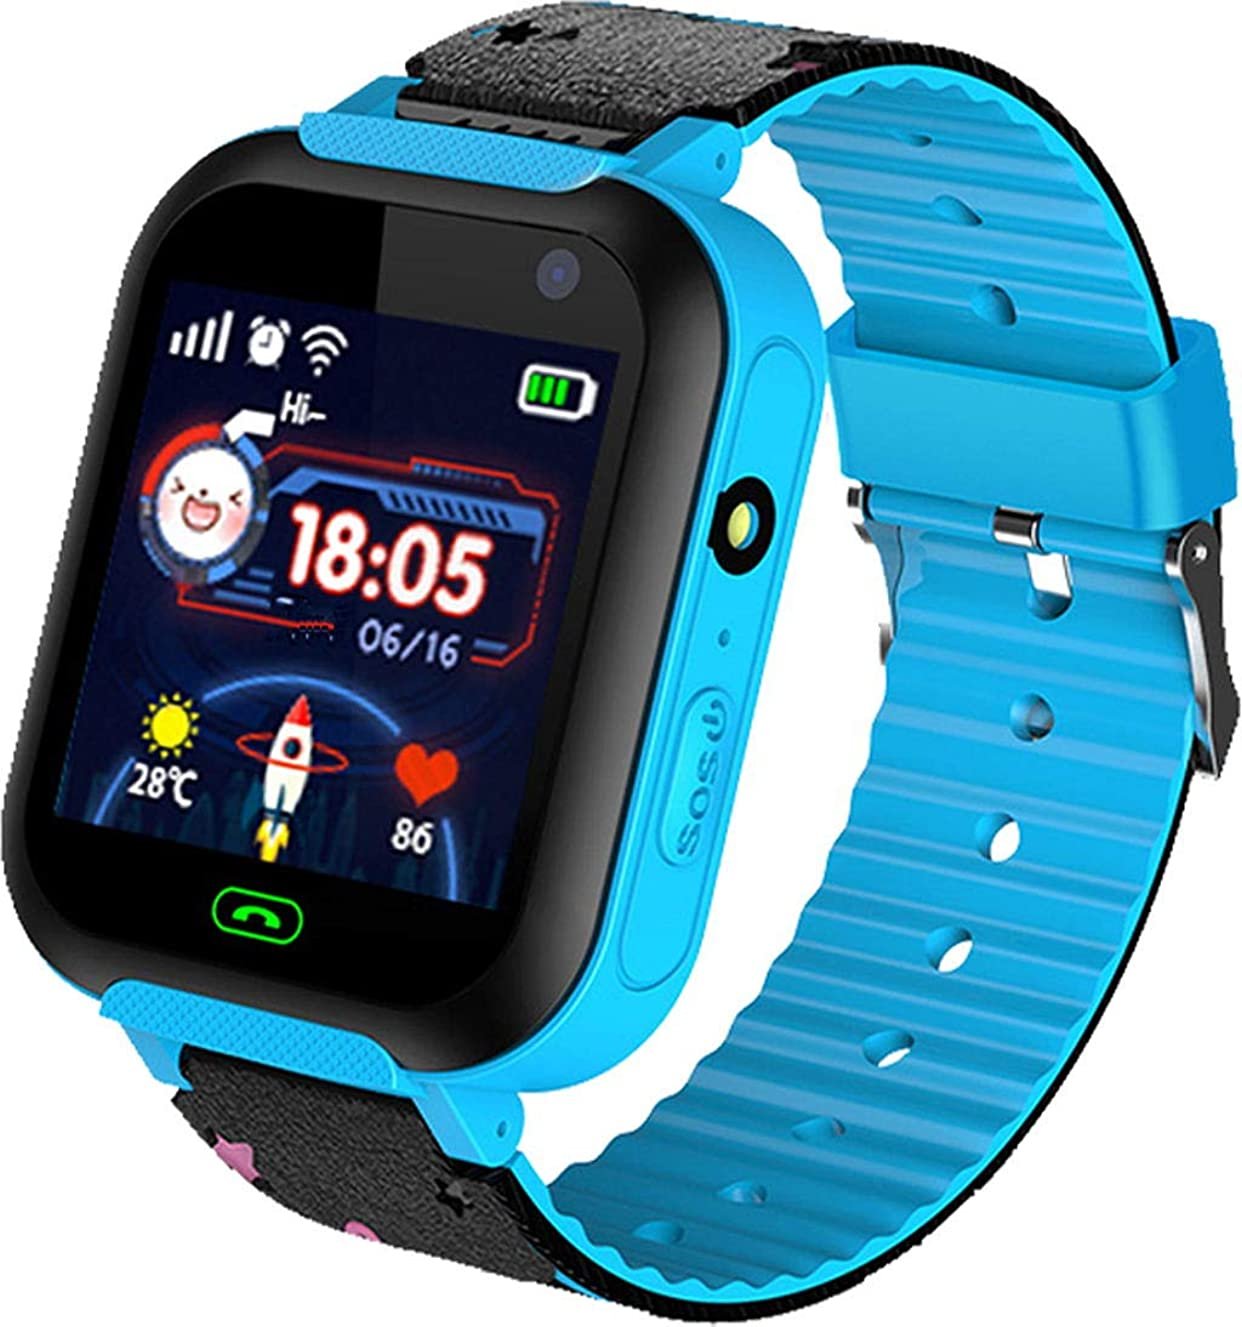 Kids Intelligent Two-Way GSM Audio Alarm LBS Tracker Smart Watch 1.44 Inch